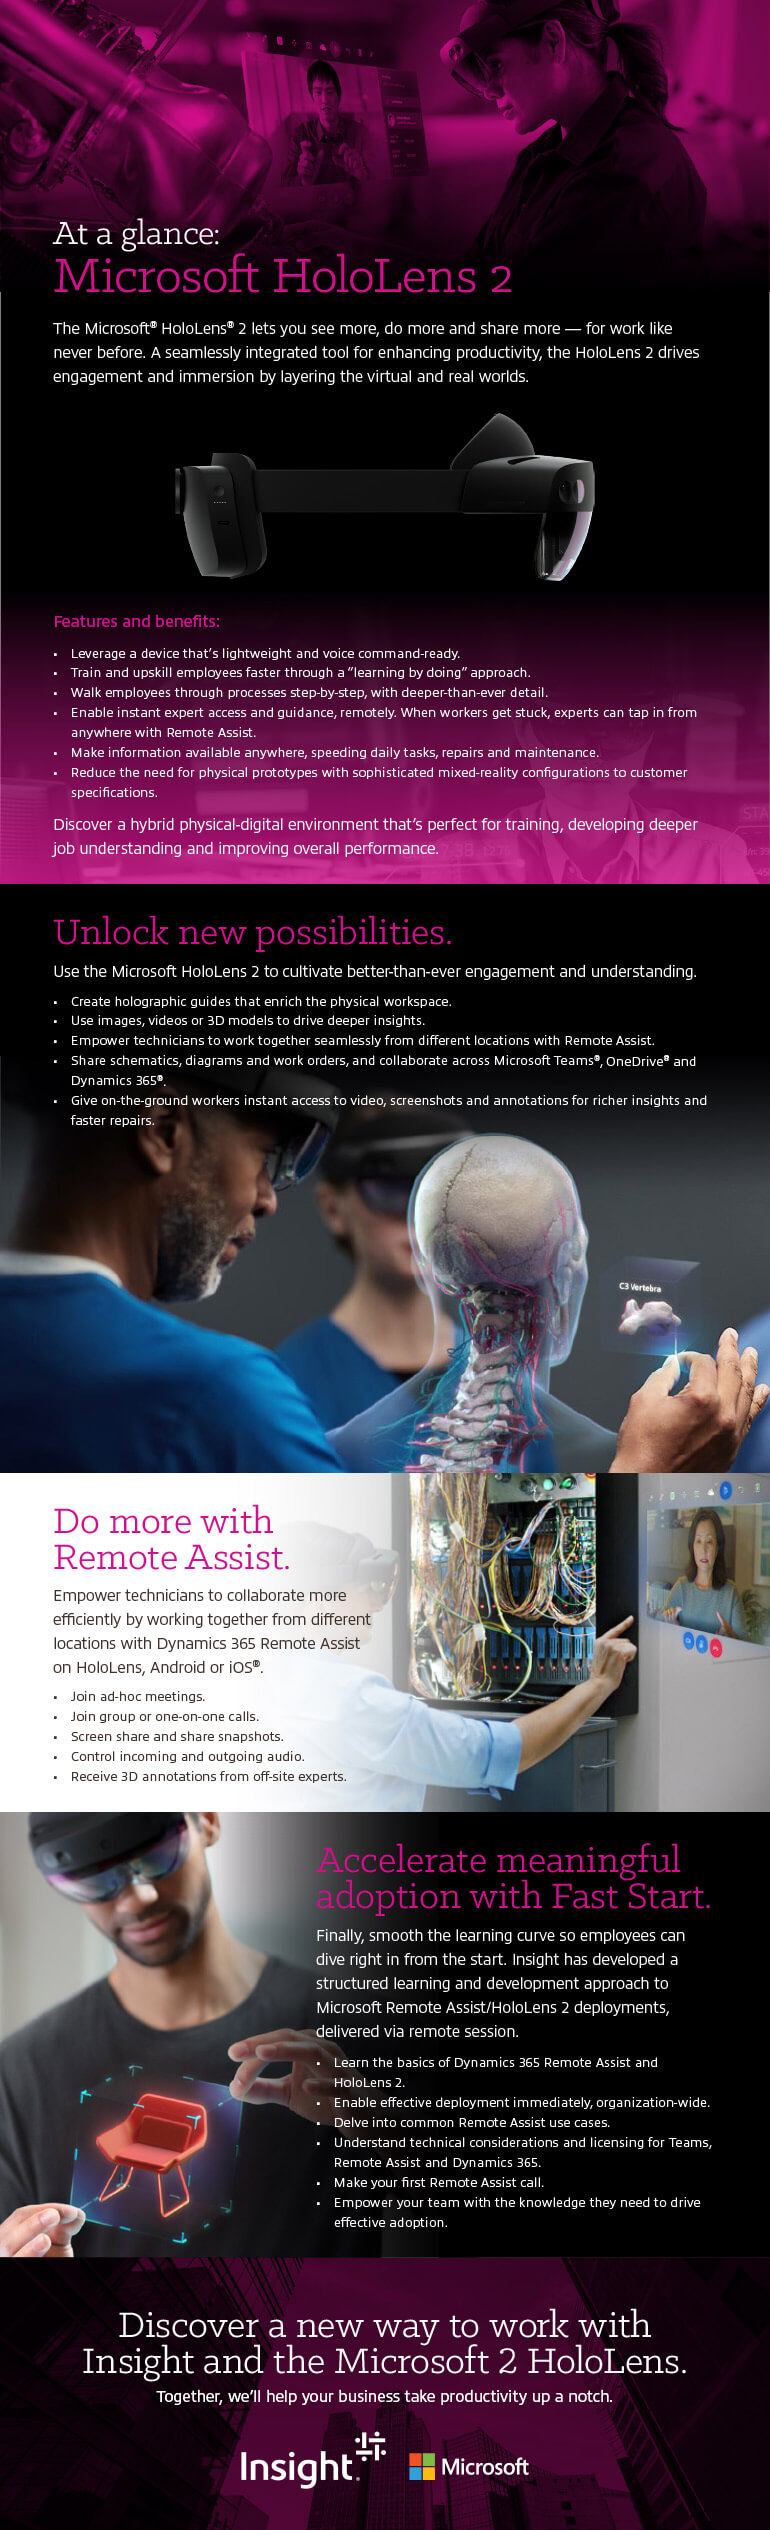 A World of New Possibilities With the Microsoft HoloLens 2 infographic as transcribed below